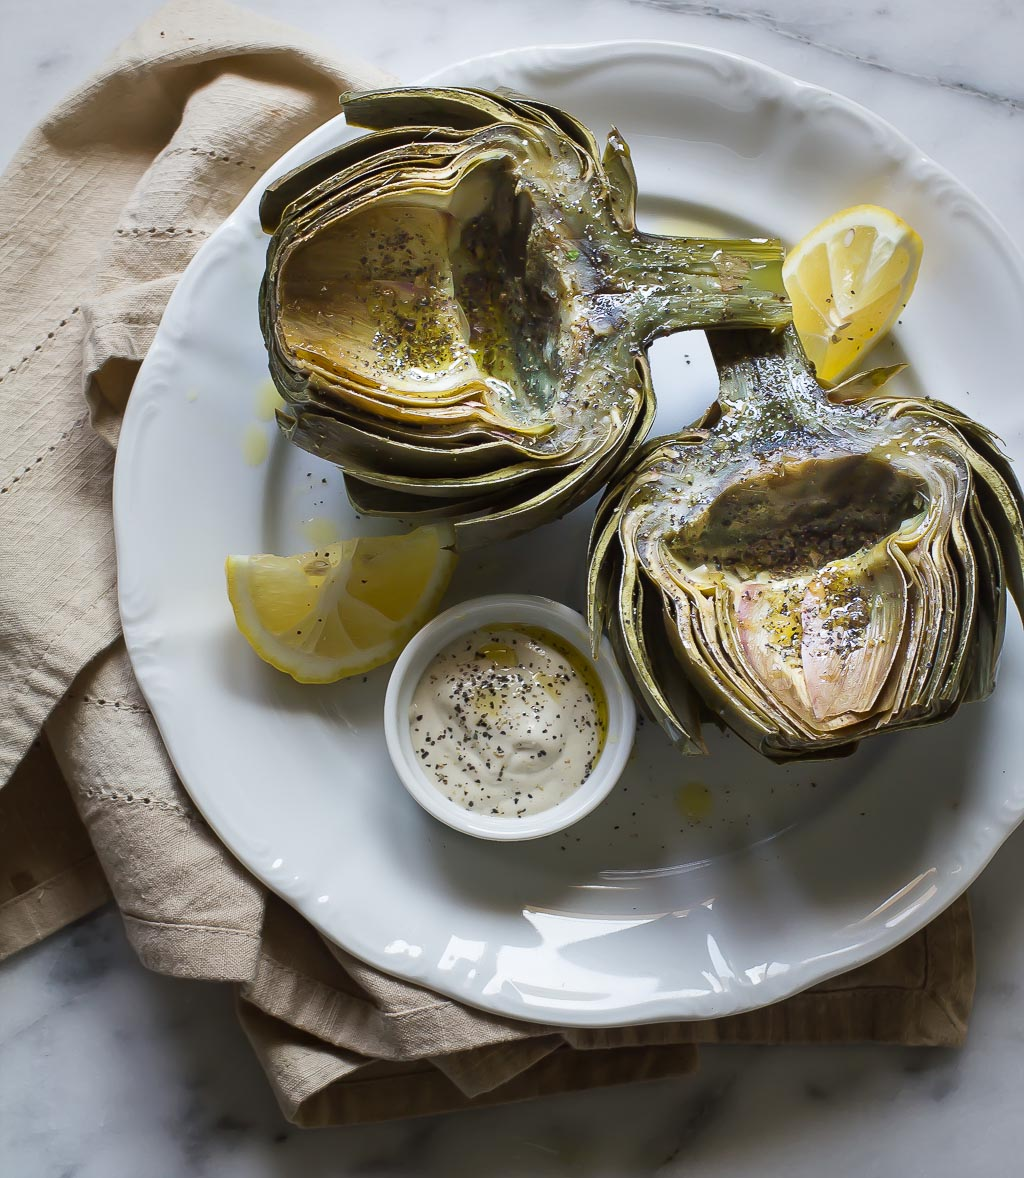 Vegan, Fiber-rich Artichokes with Garlic and Black Pepper Aioli